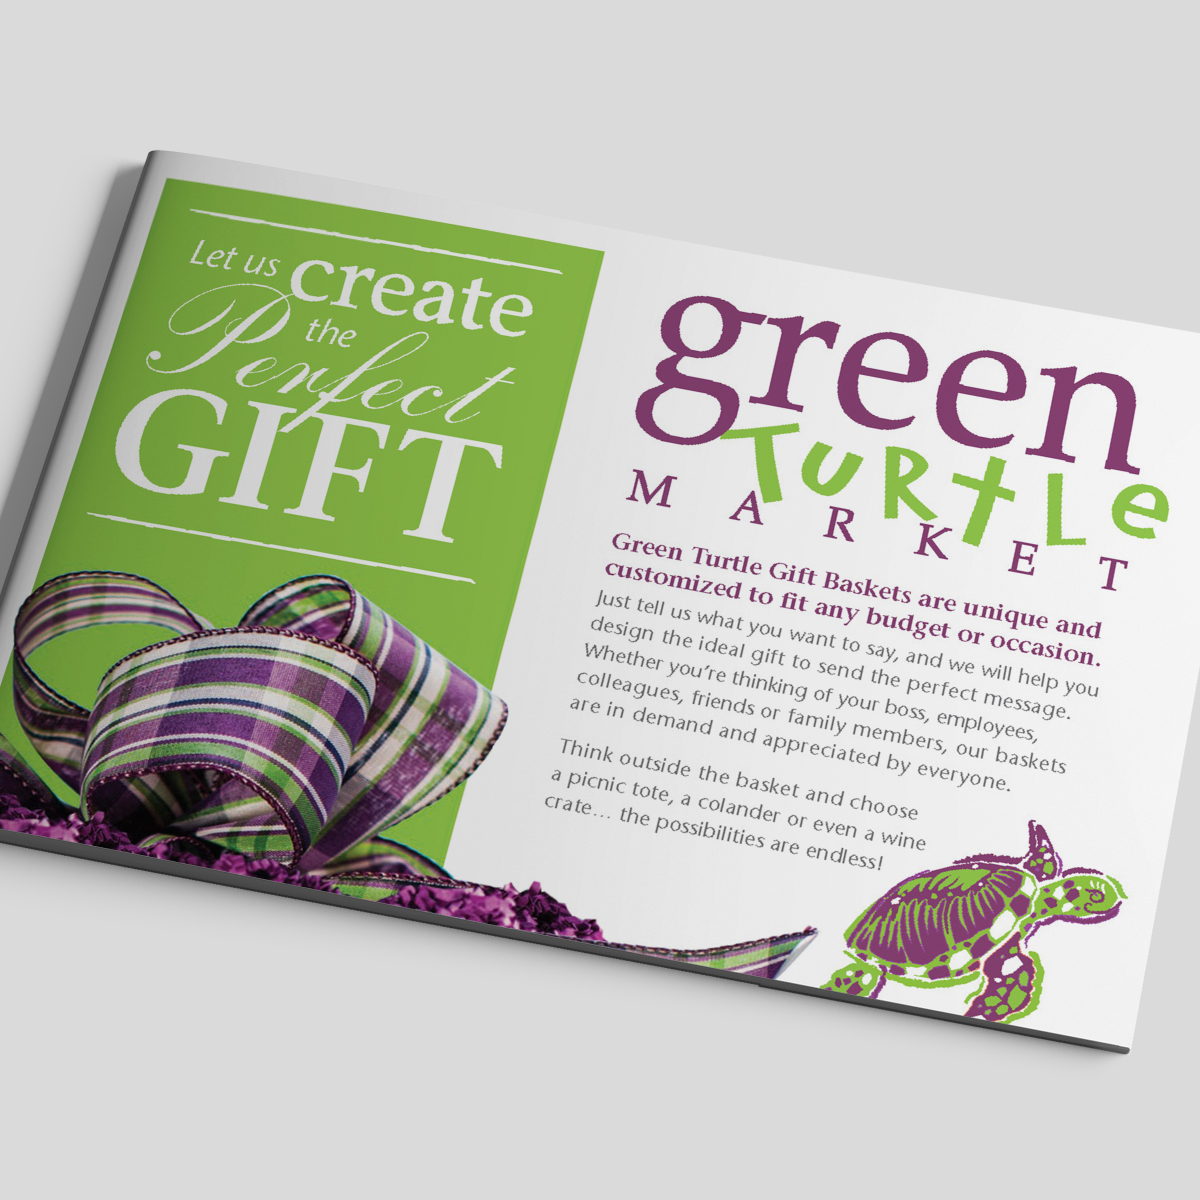 green turtle gifts cover